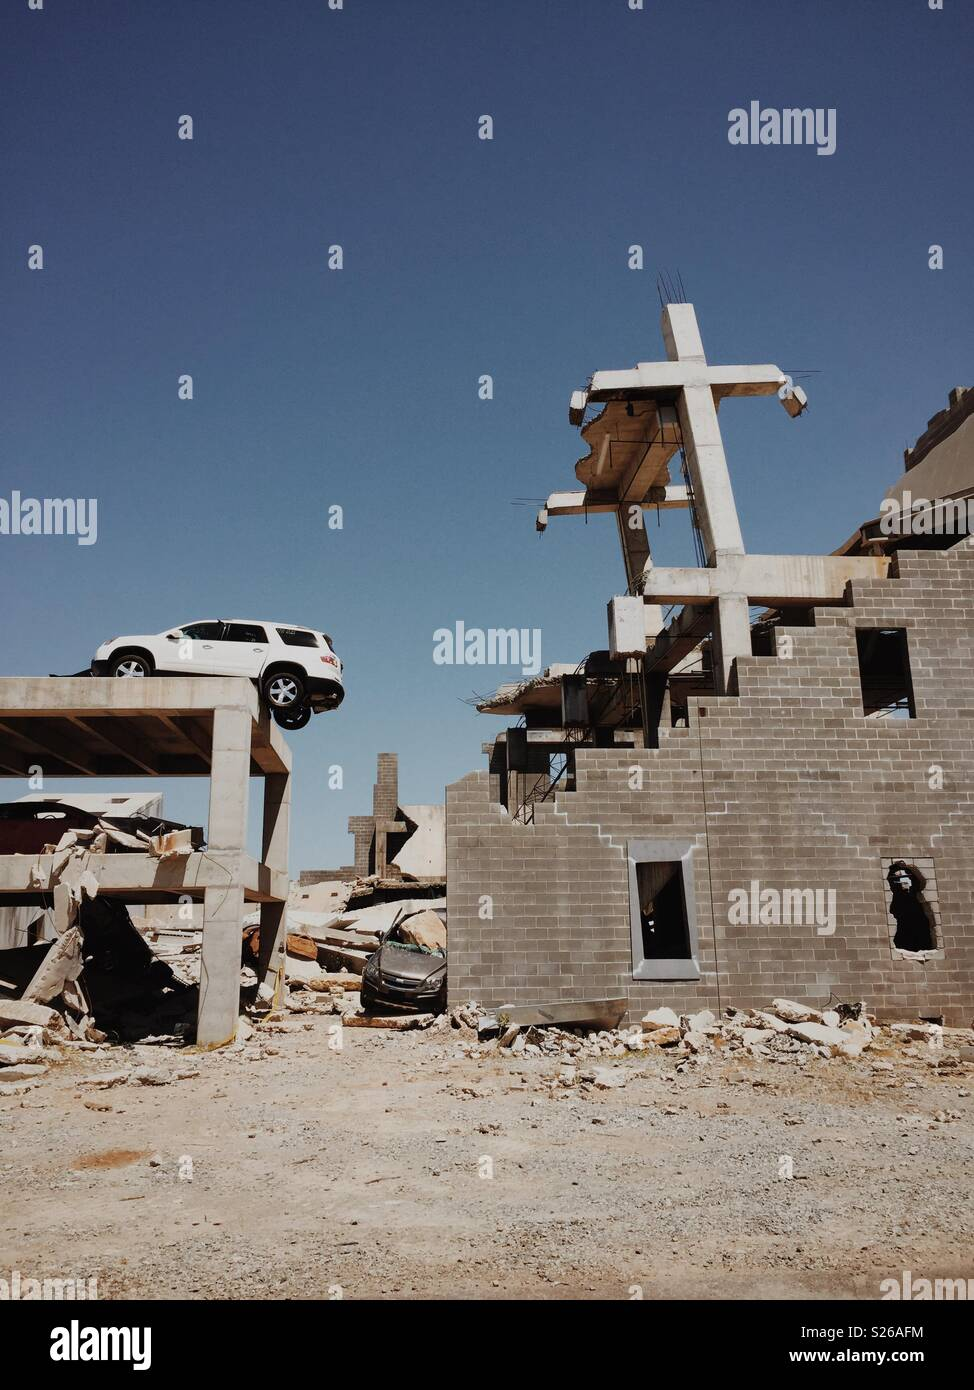 A car teeters on the wreckage of a building. - Stock Image